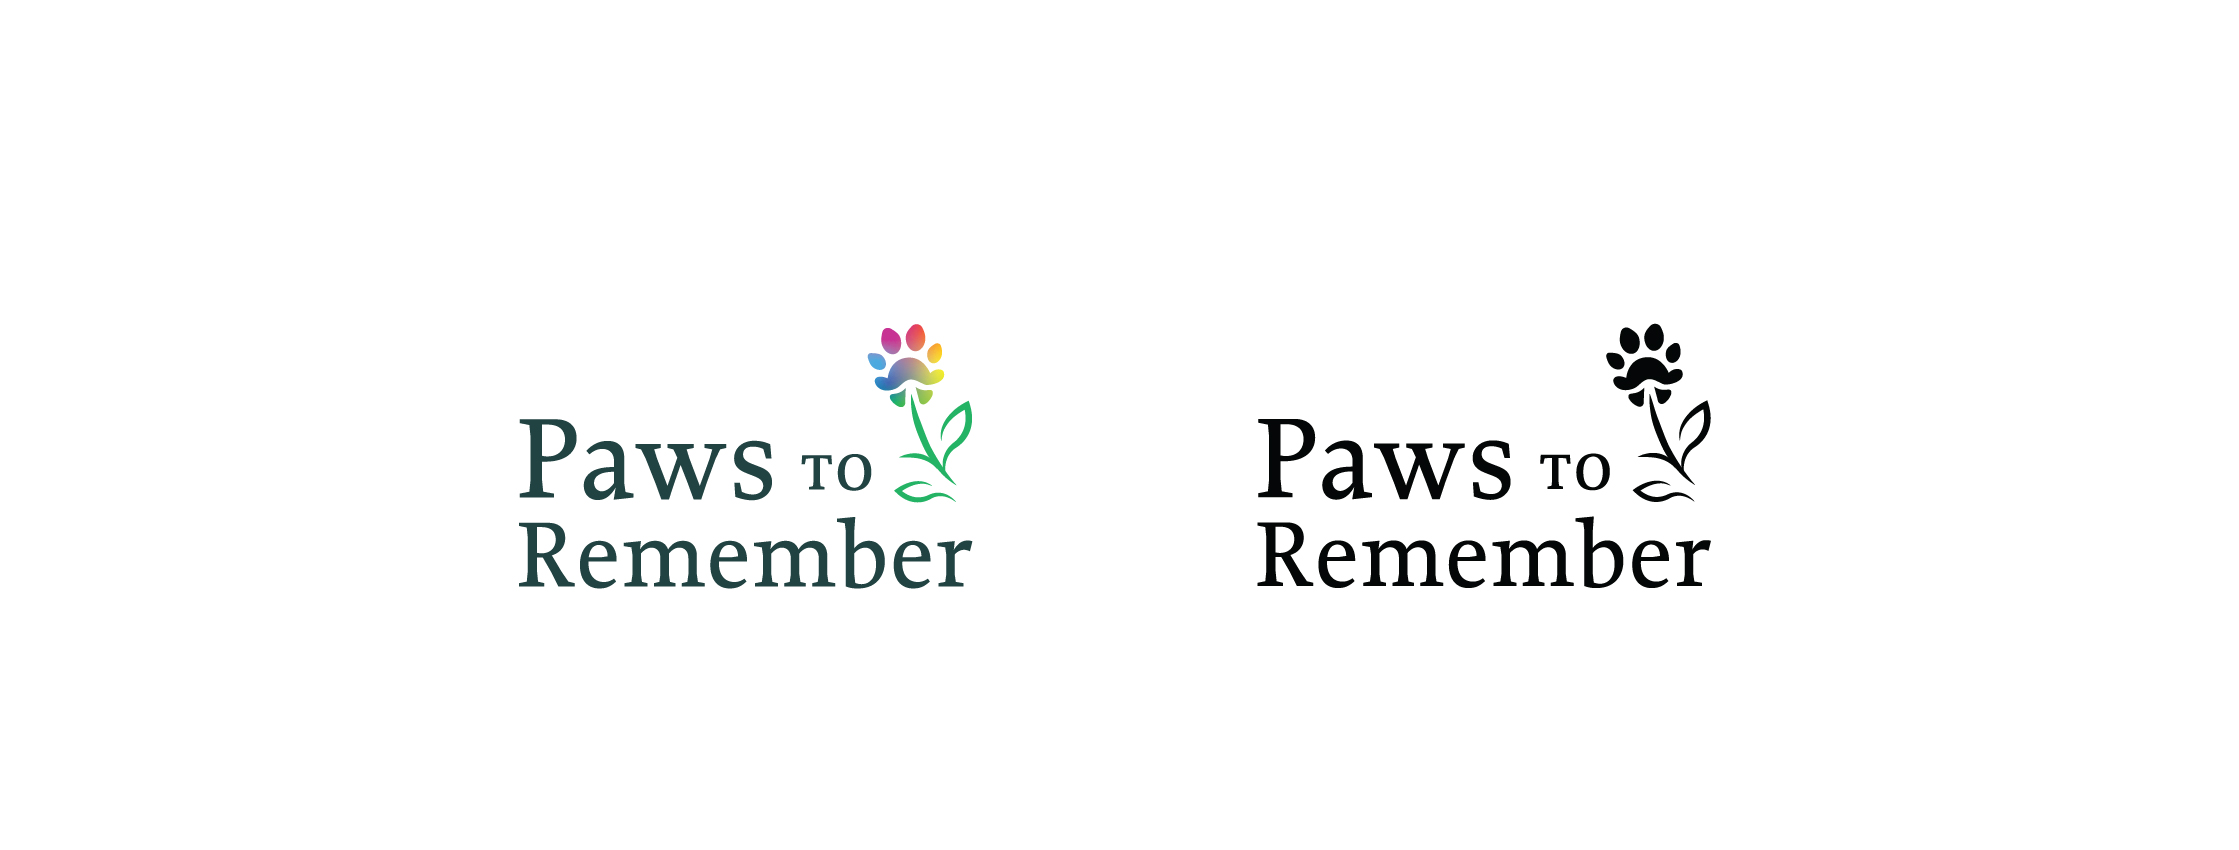 Paws_To_Remember_Final-08